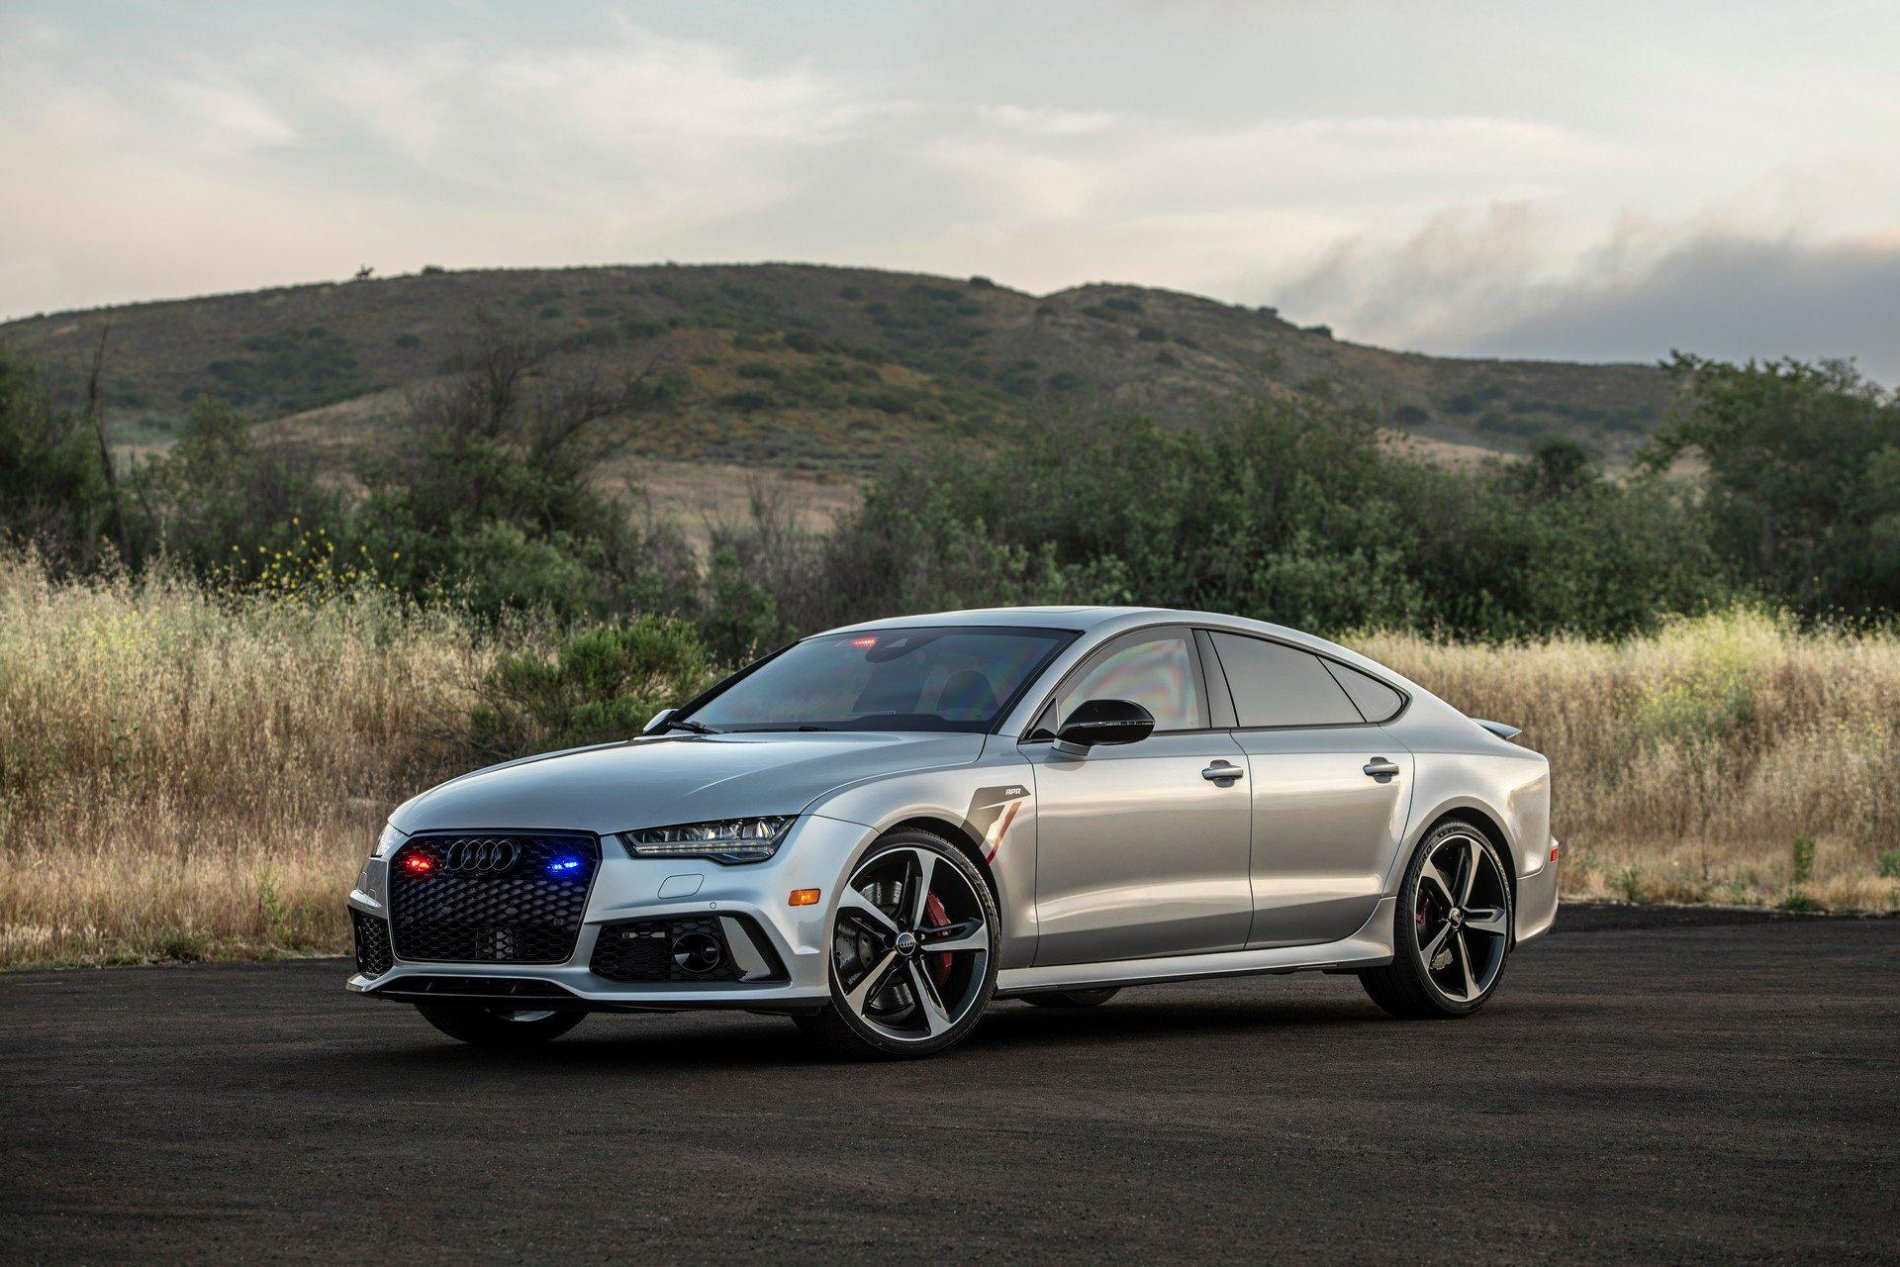 AddArmor APR Audi RS7 - AddArmor APR Audi RS7